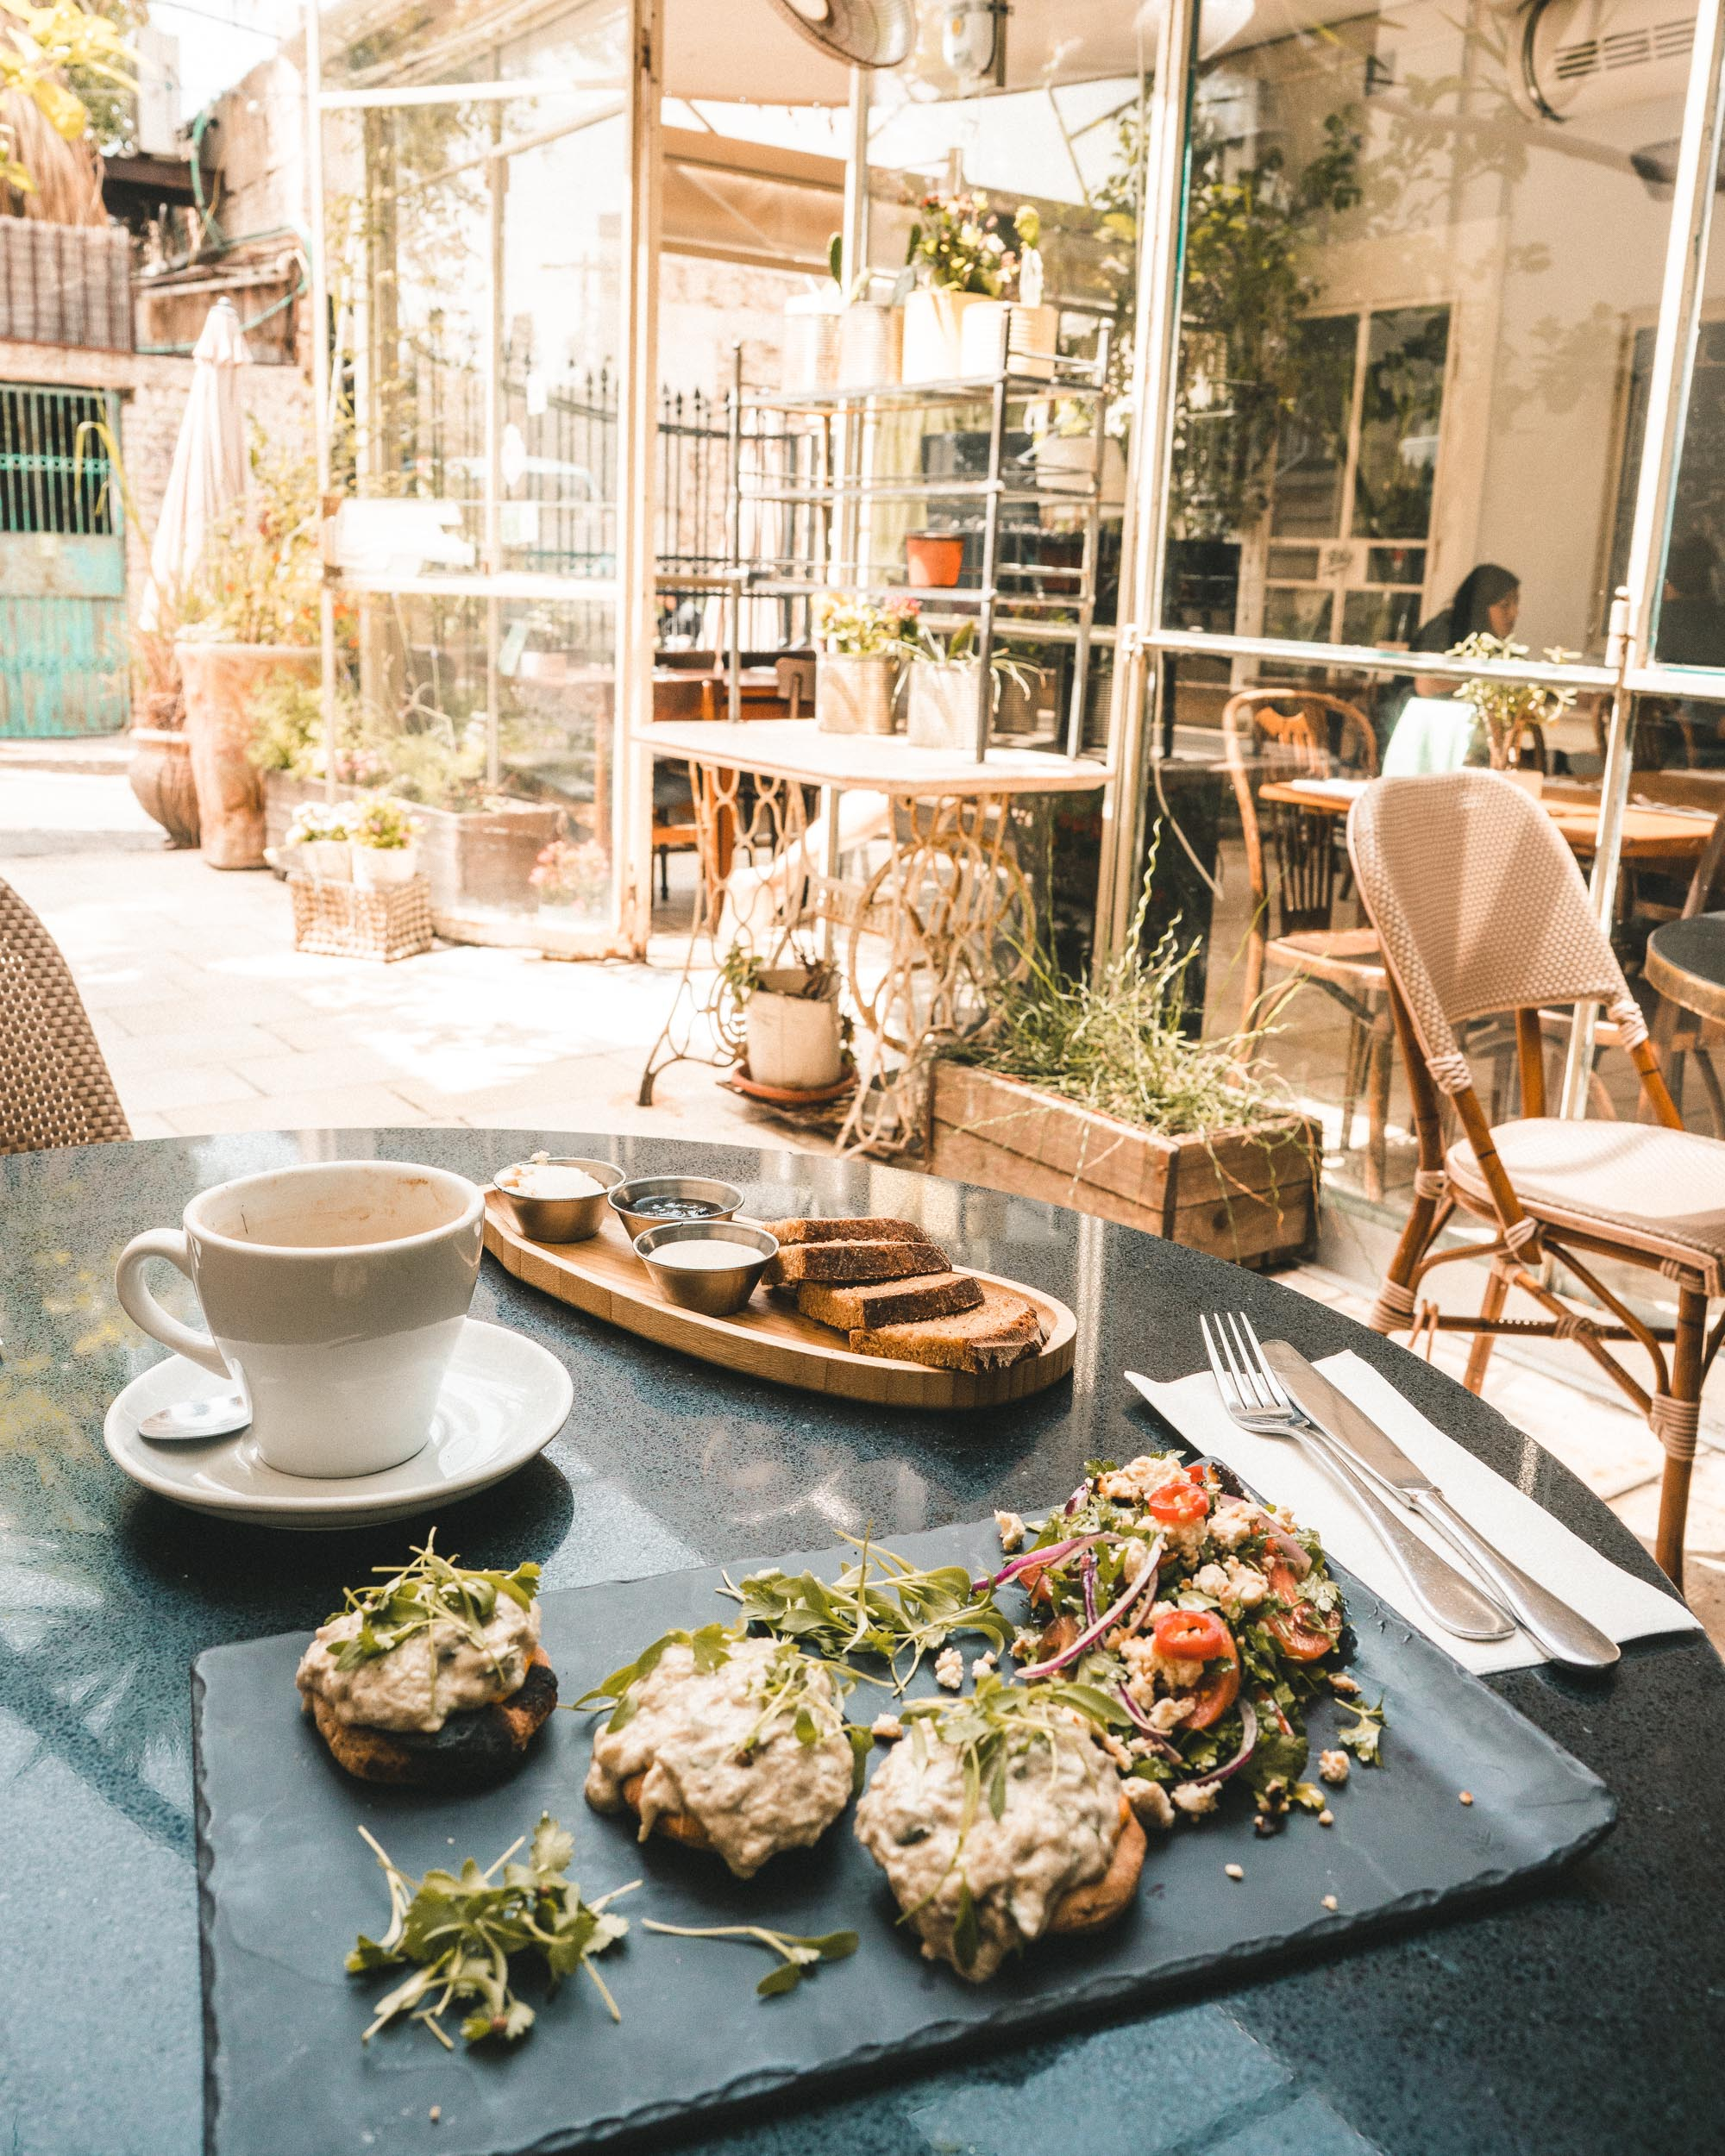 The best healthy vegan brunch and breakfast at Meshek Barzilay in Tel Aviv, Israel